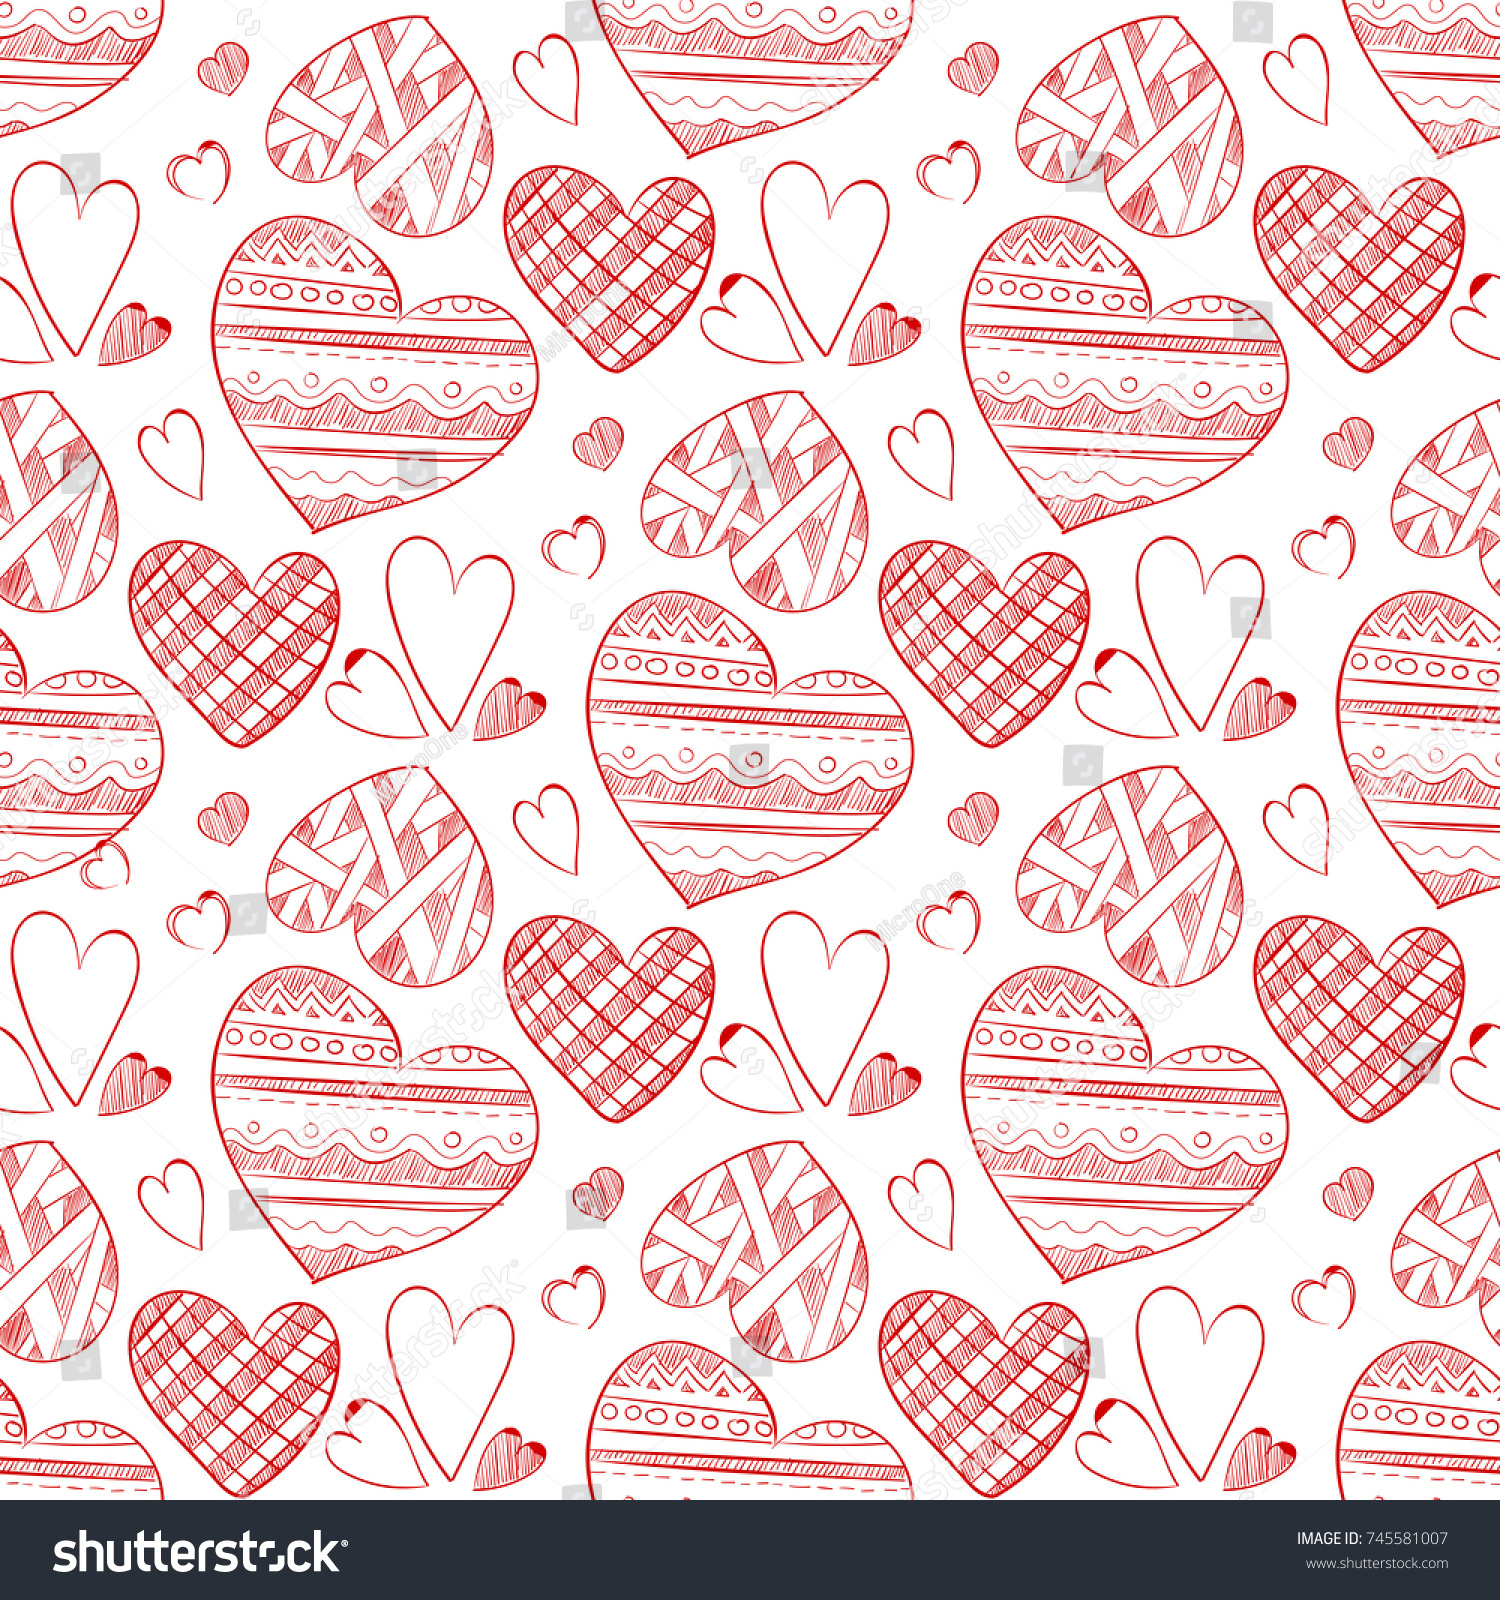 Red Doodle Hearts Seamless Pattern Wallpaper Stock Vector HD